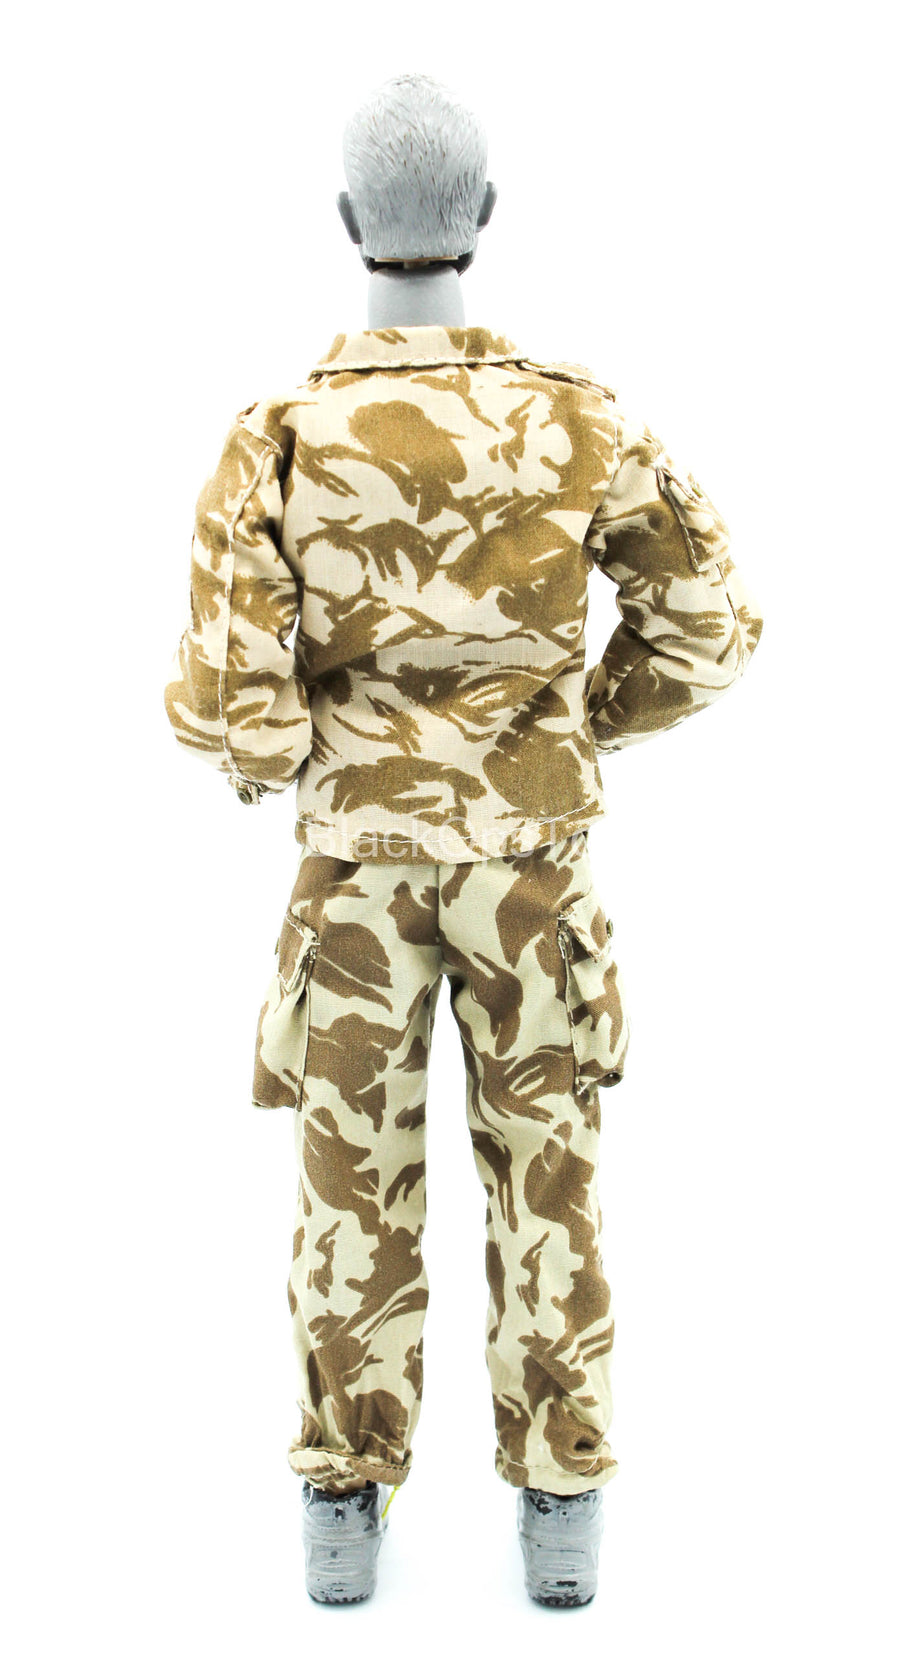 Royal Marines - Commando - DPM Camo Uniform Set